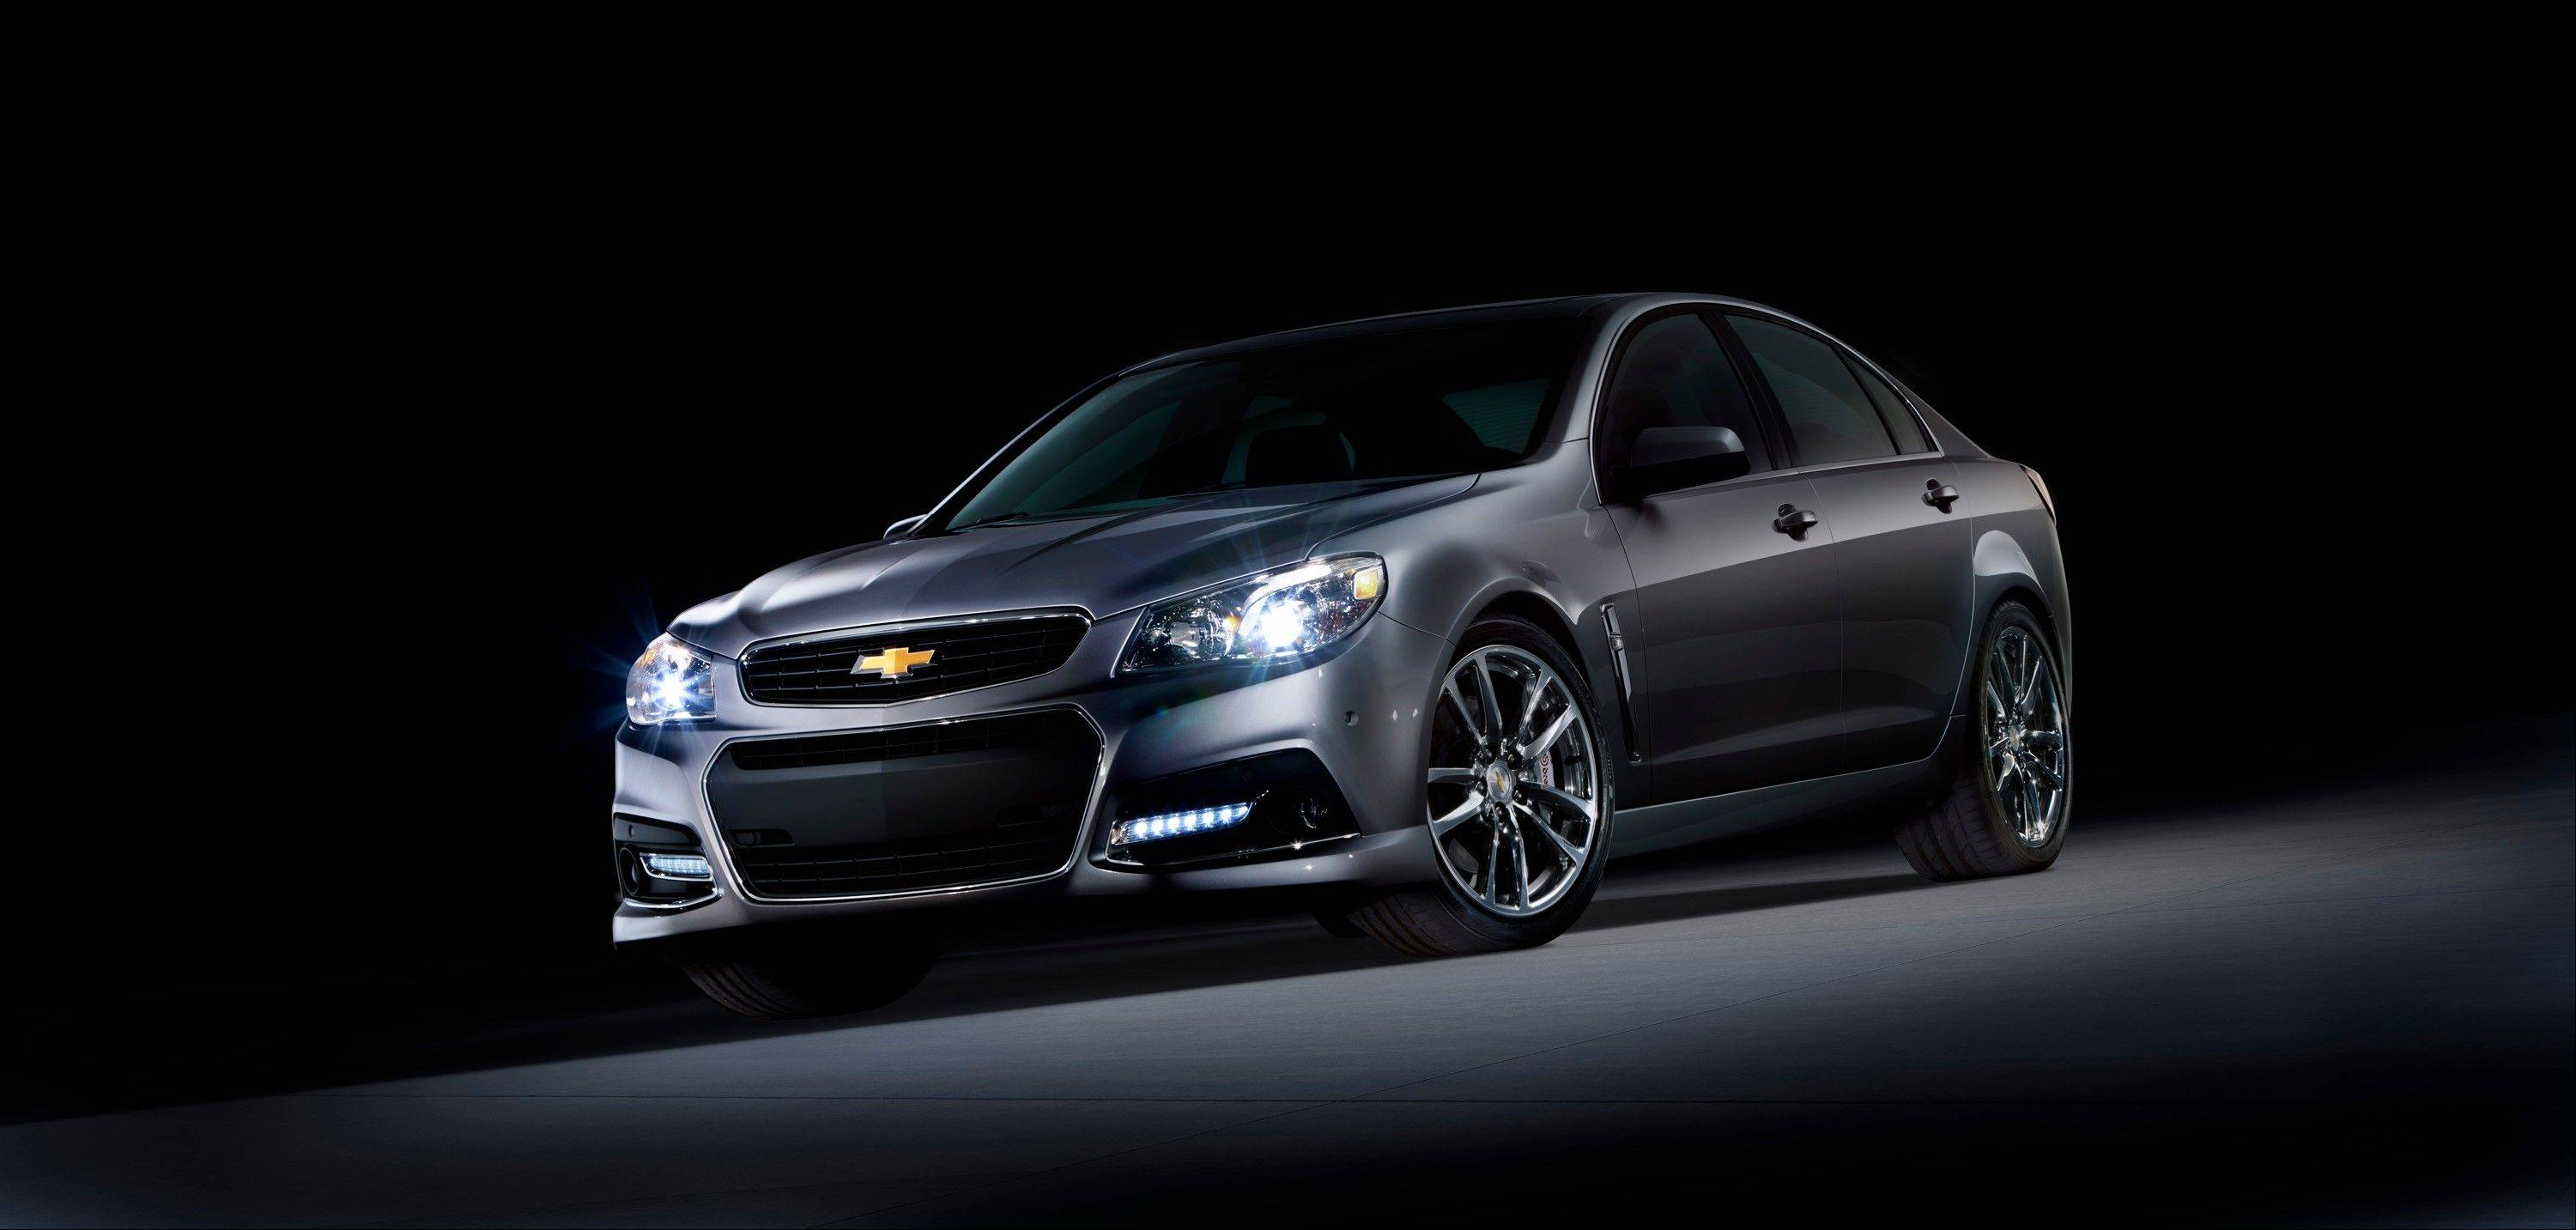 The 2014 Chevrolet SS performance sedan.